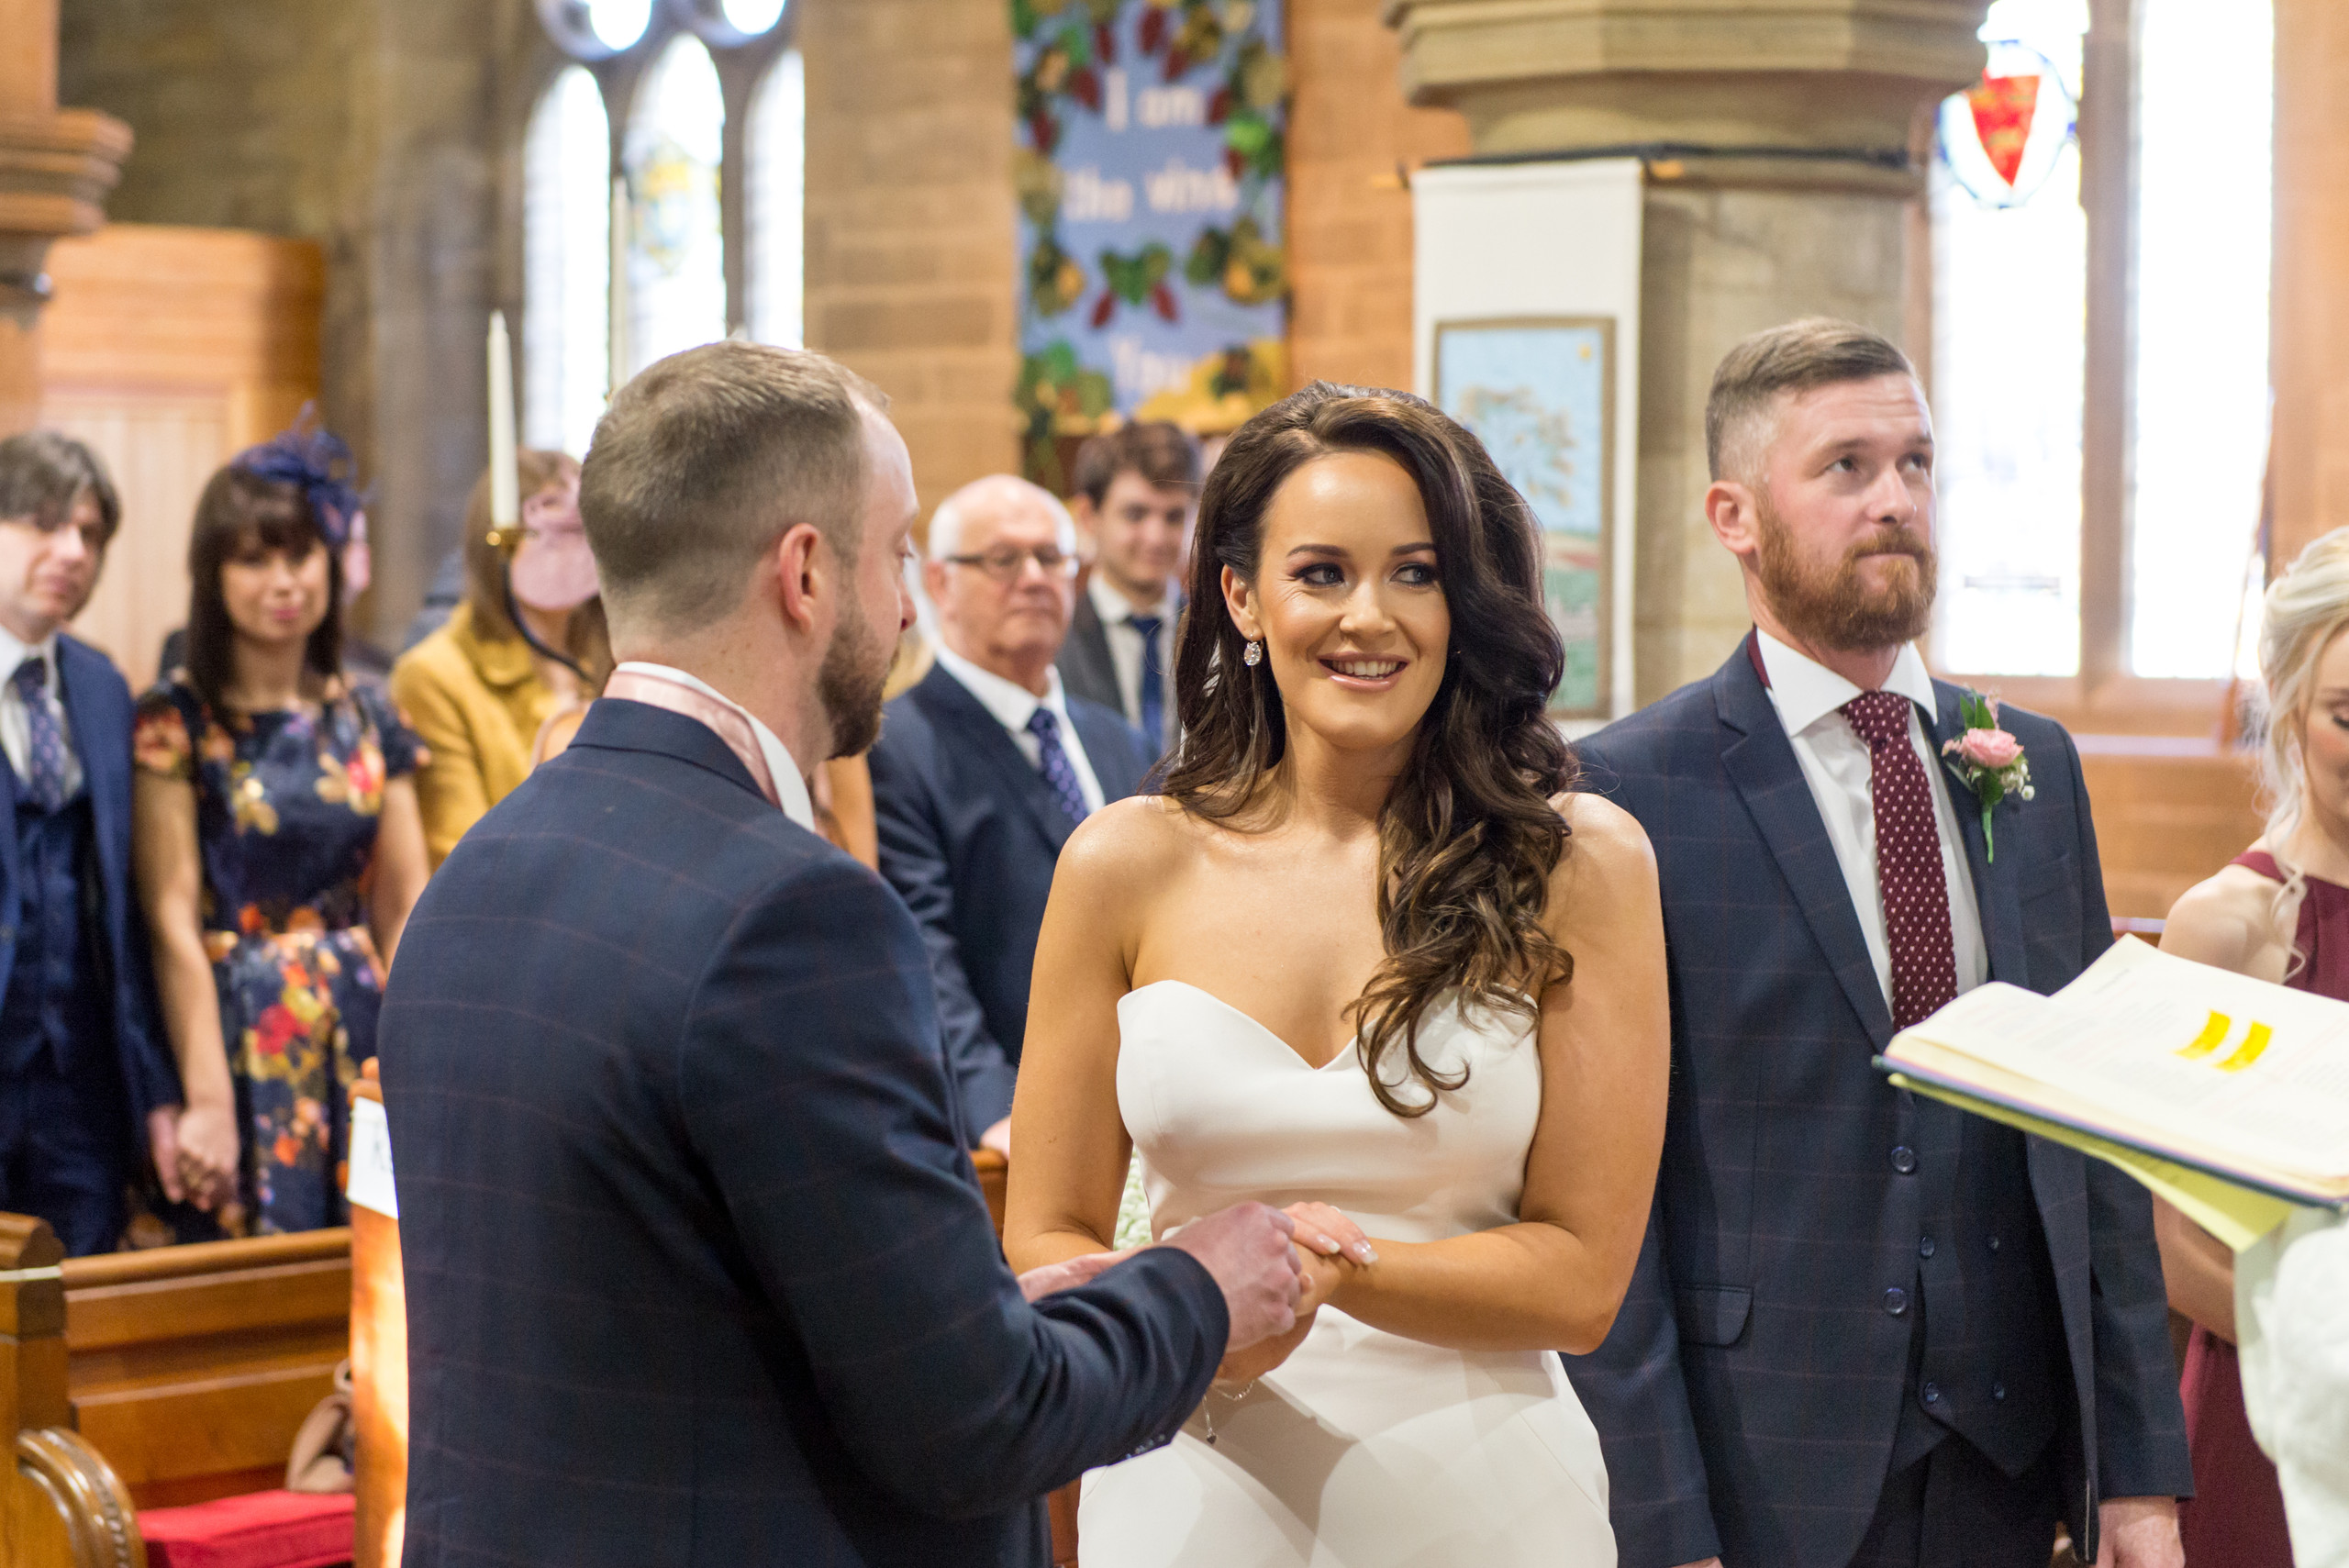 Photo of relaxed bride and groom exchanging rings during church ceremony